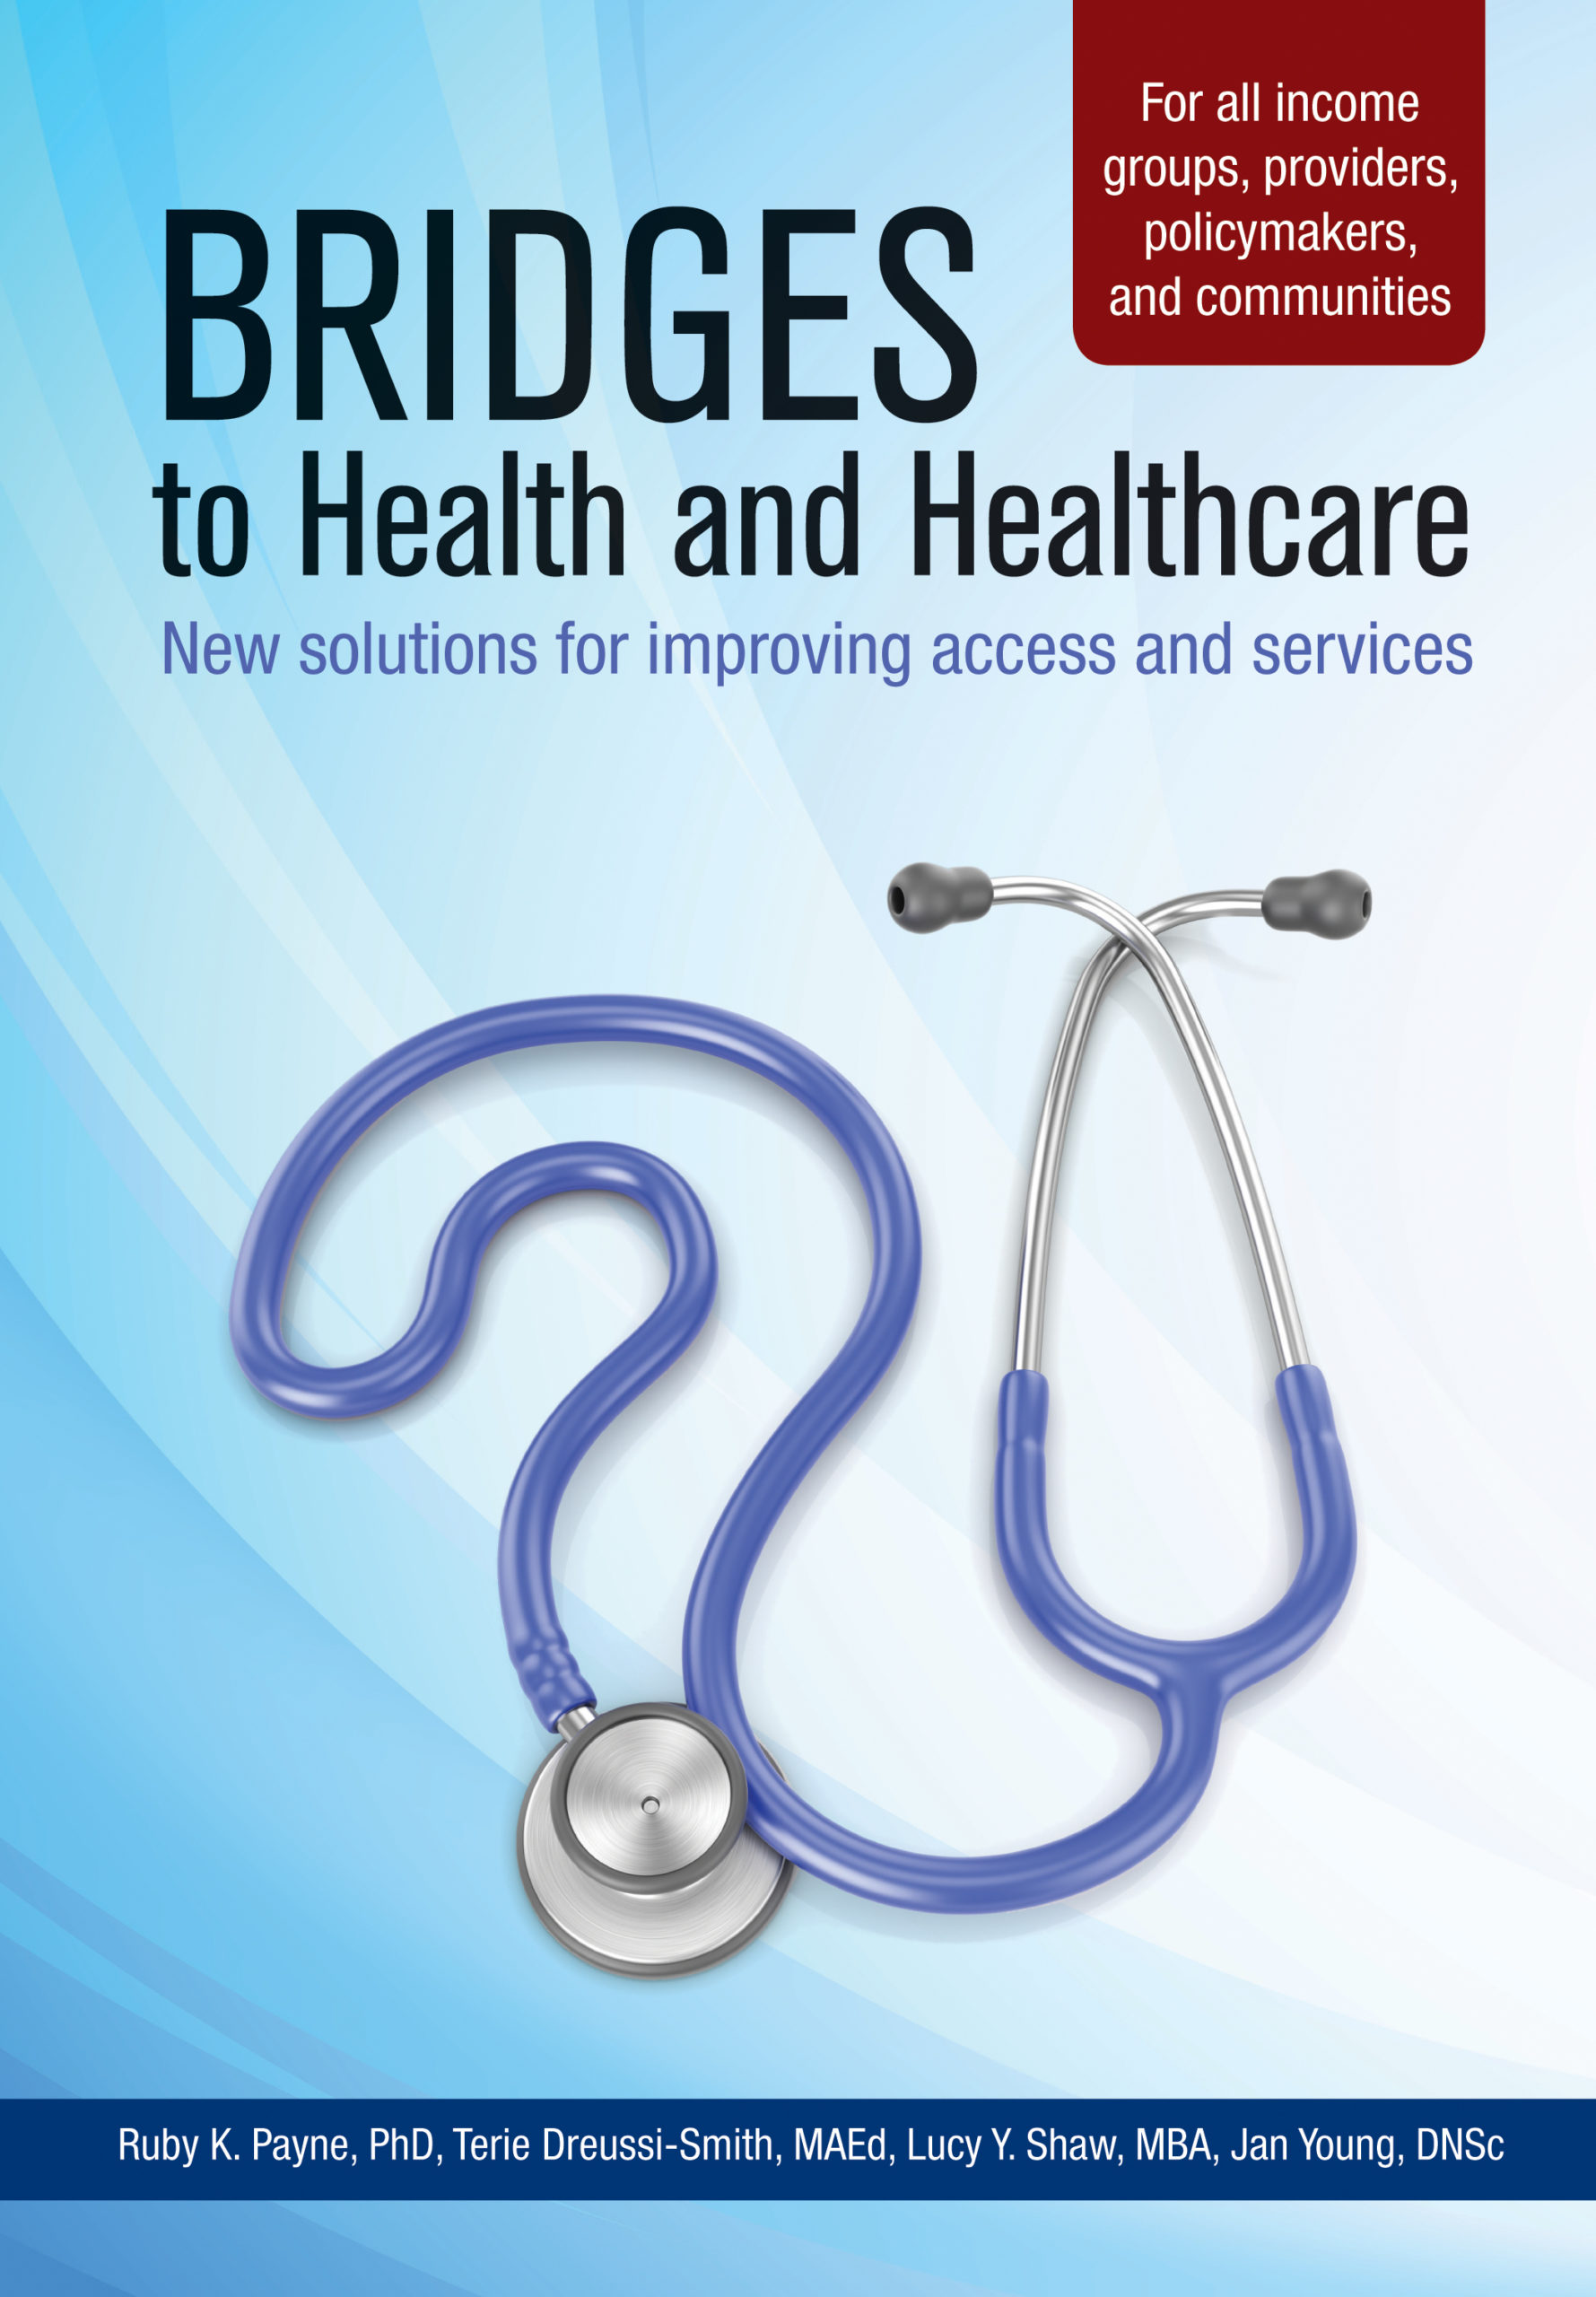 Bridges to Health and Healthcare: New solutions for improving access and services - Book